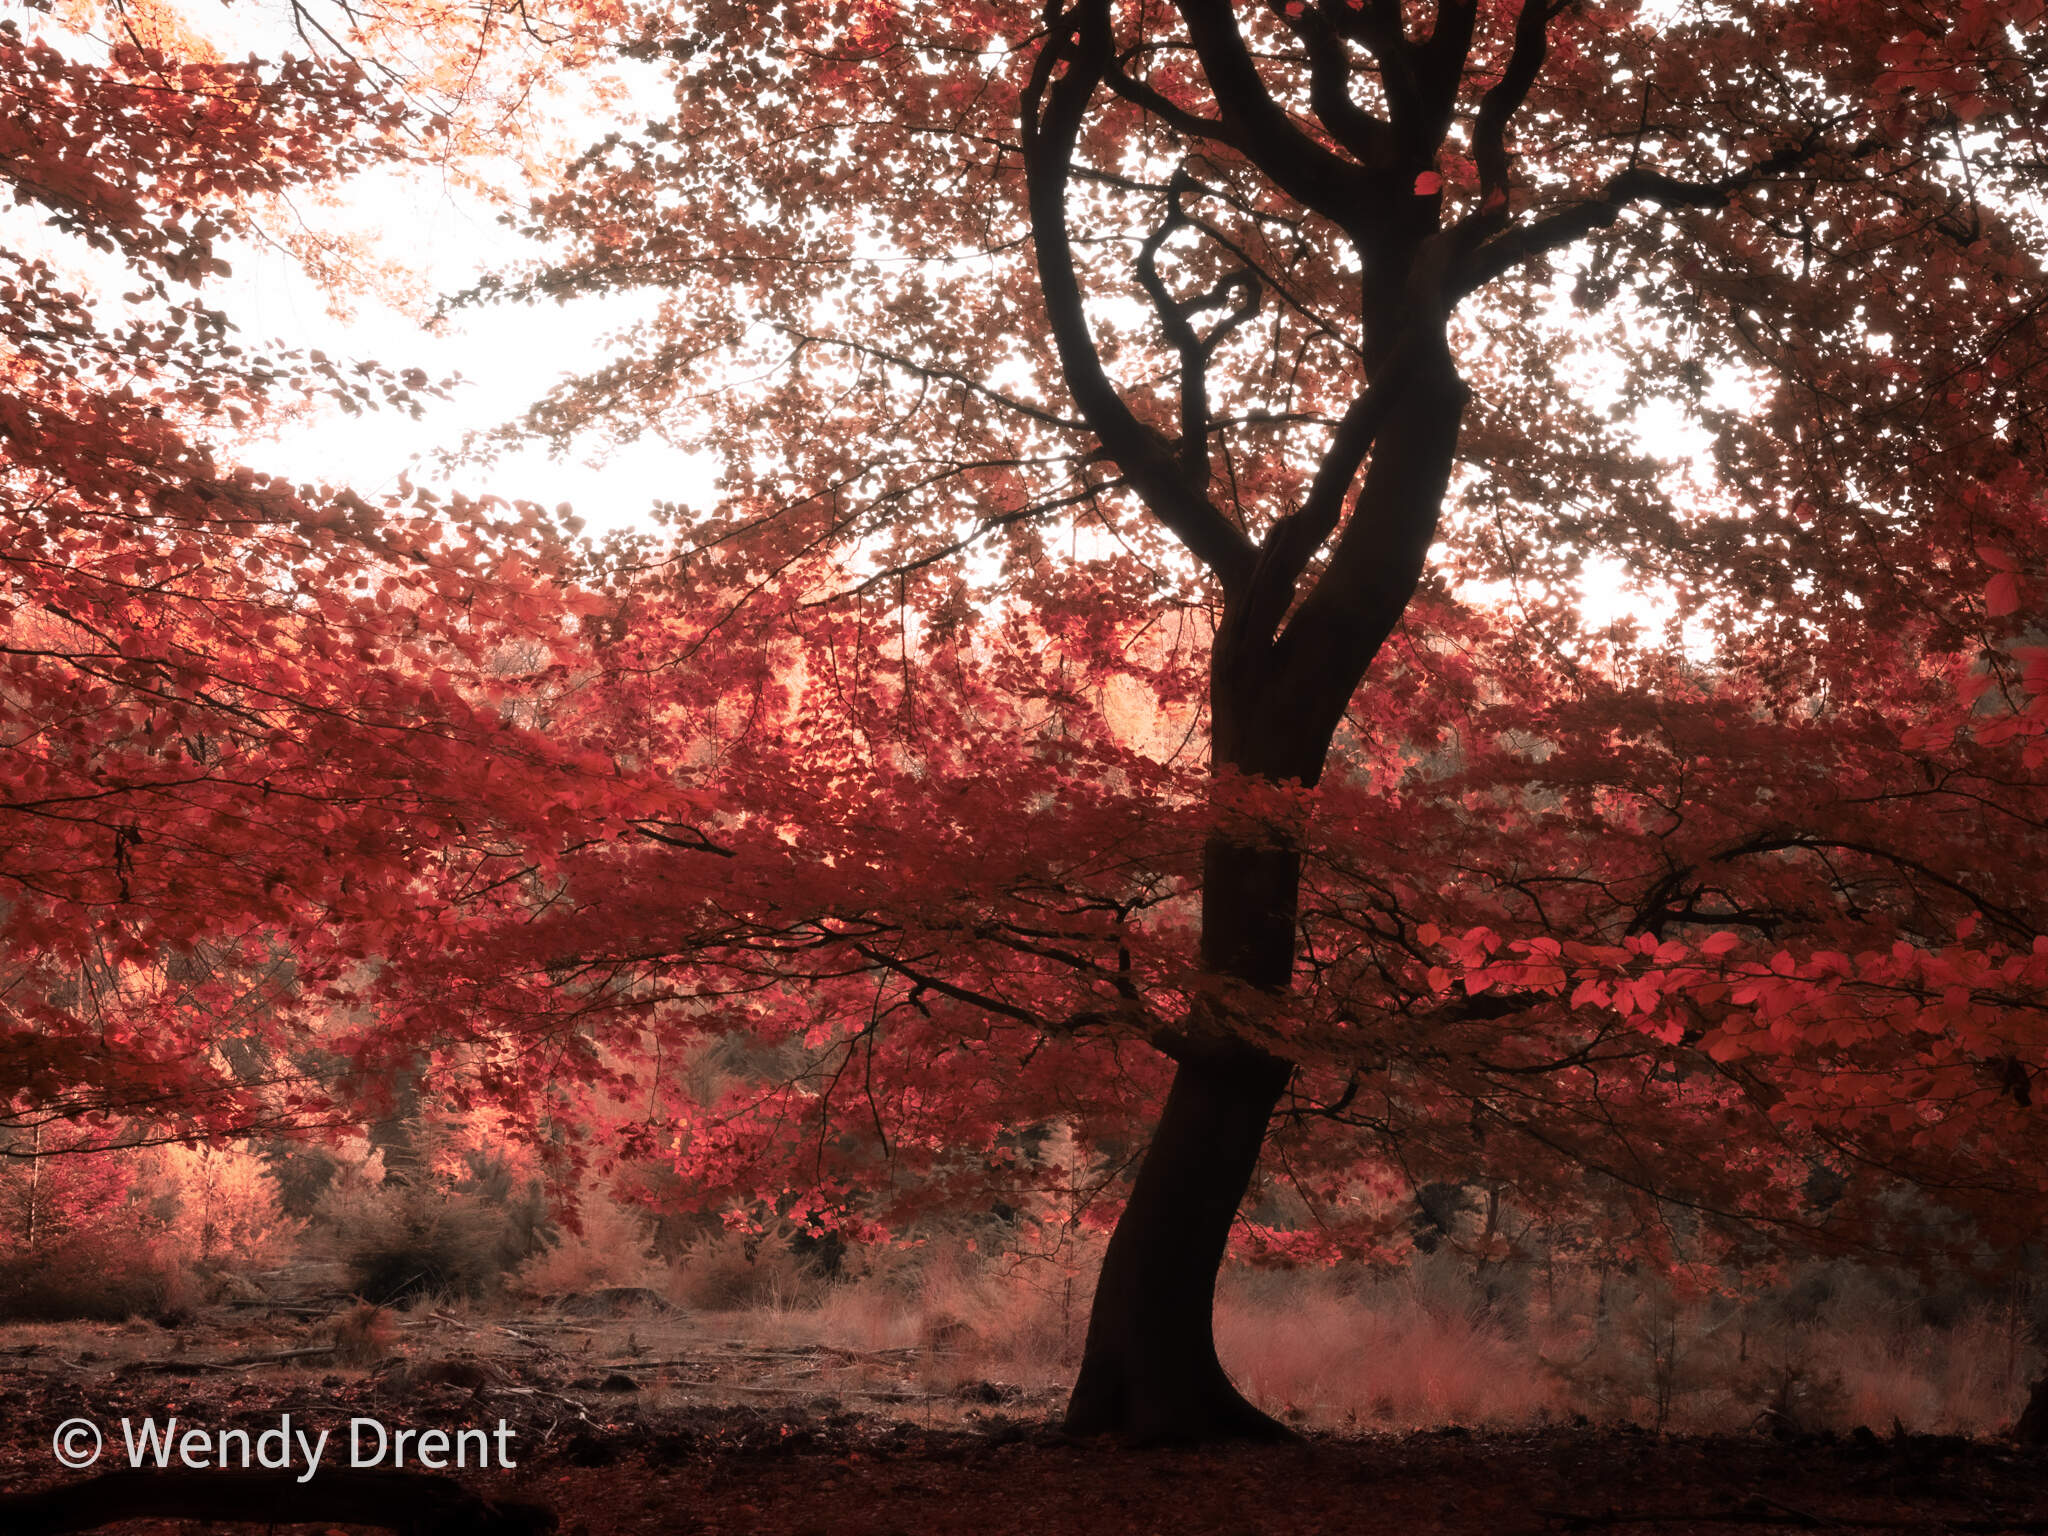 autum, tree, forest, abstract, wendy drent, olympus, landscape, tree, red leaves, art, painting with light, leudal, limburg, netherlands